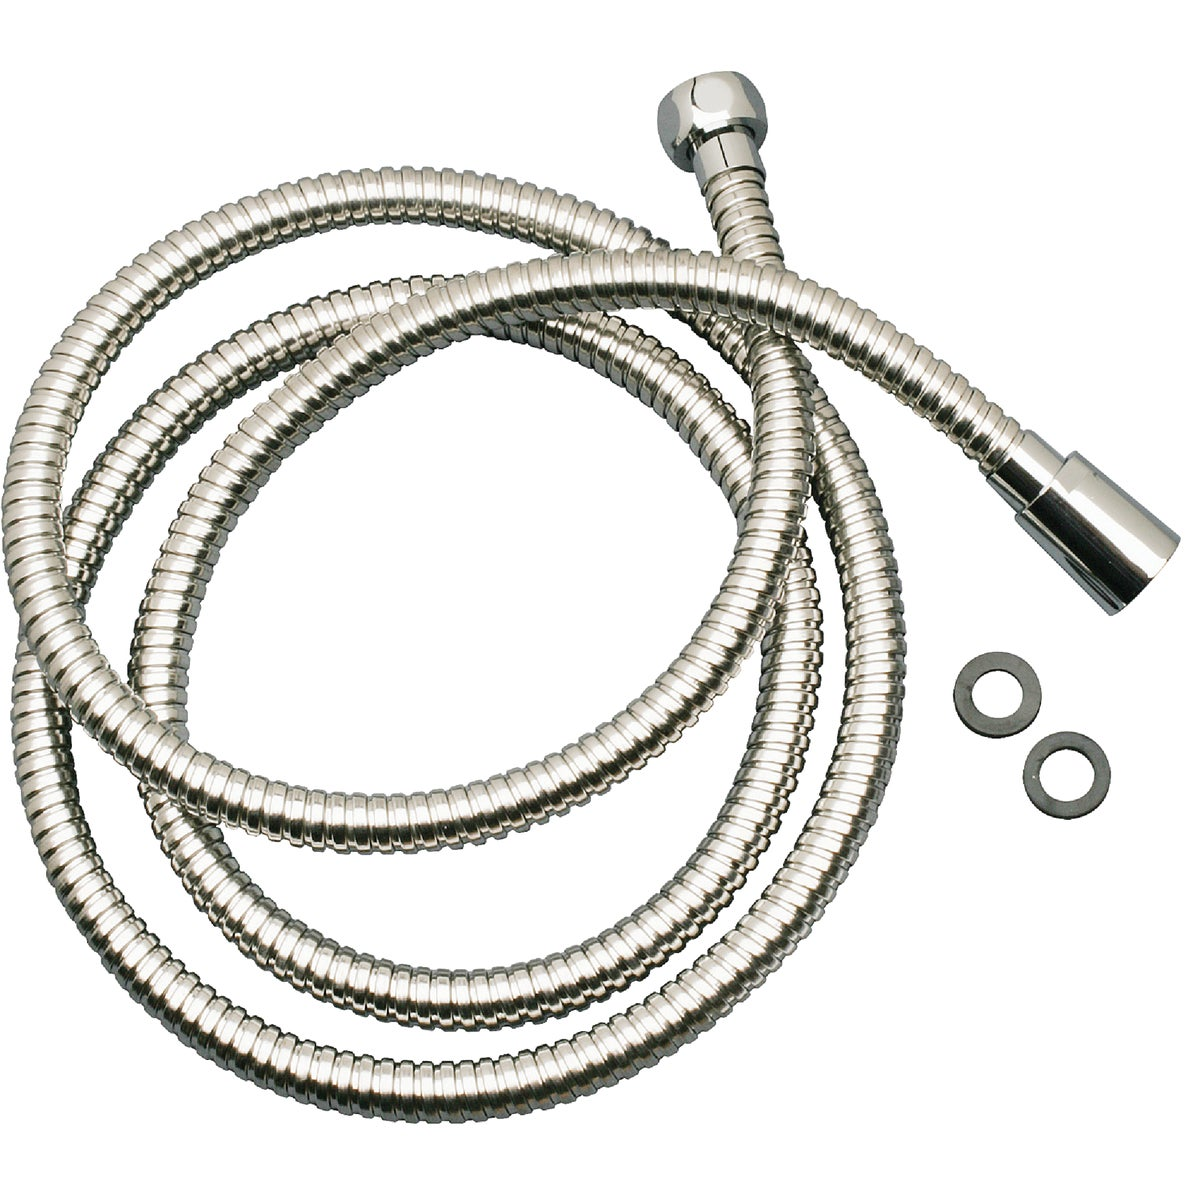 "69"" SHOWER HOSE - 439341 by Plumb Pak/keeney Mfg"